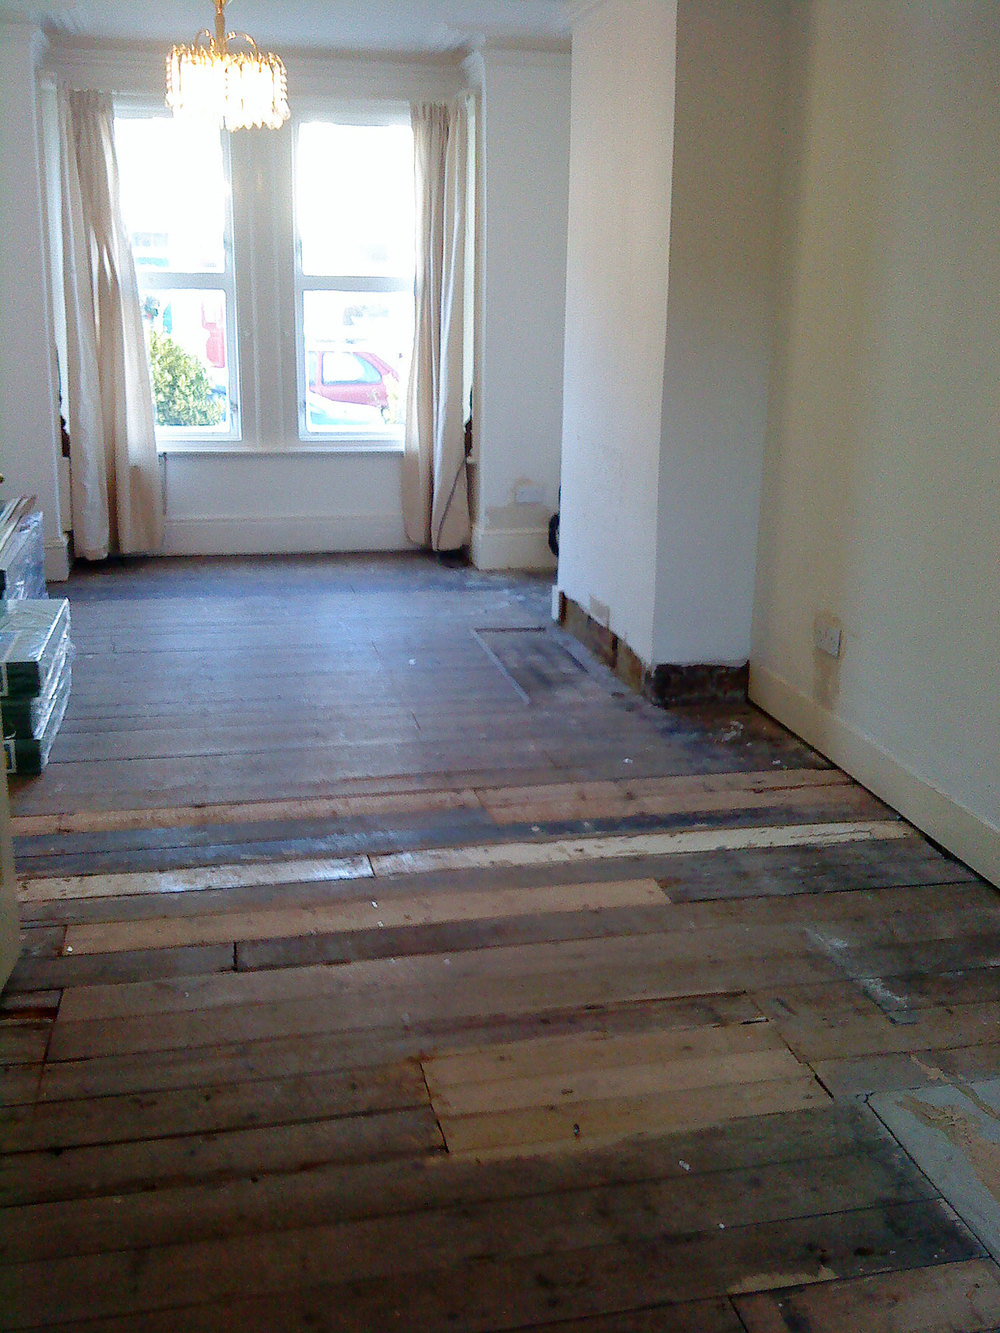 laminatefloor-before.jpg